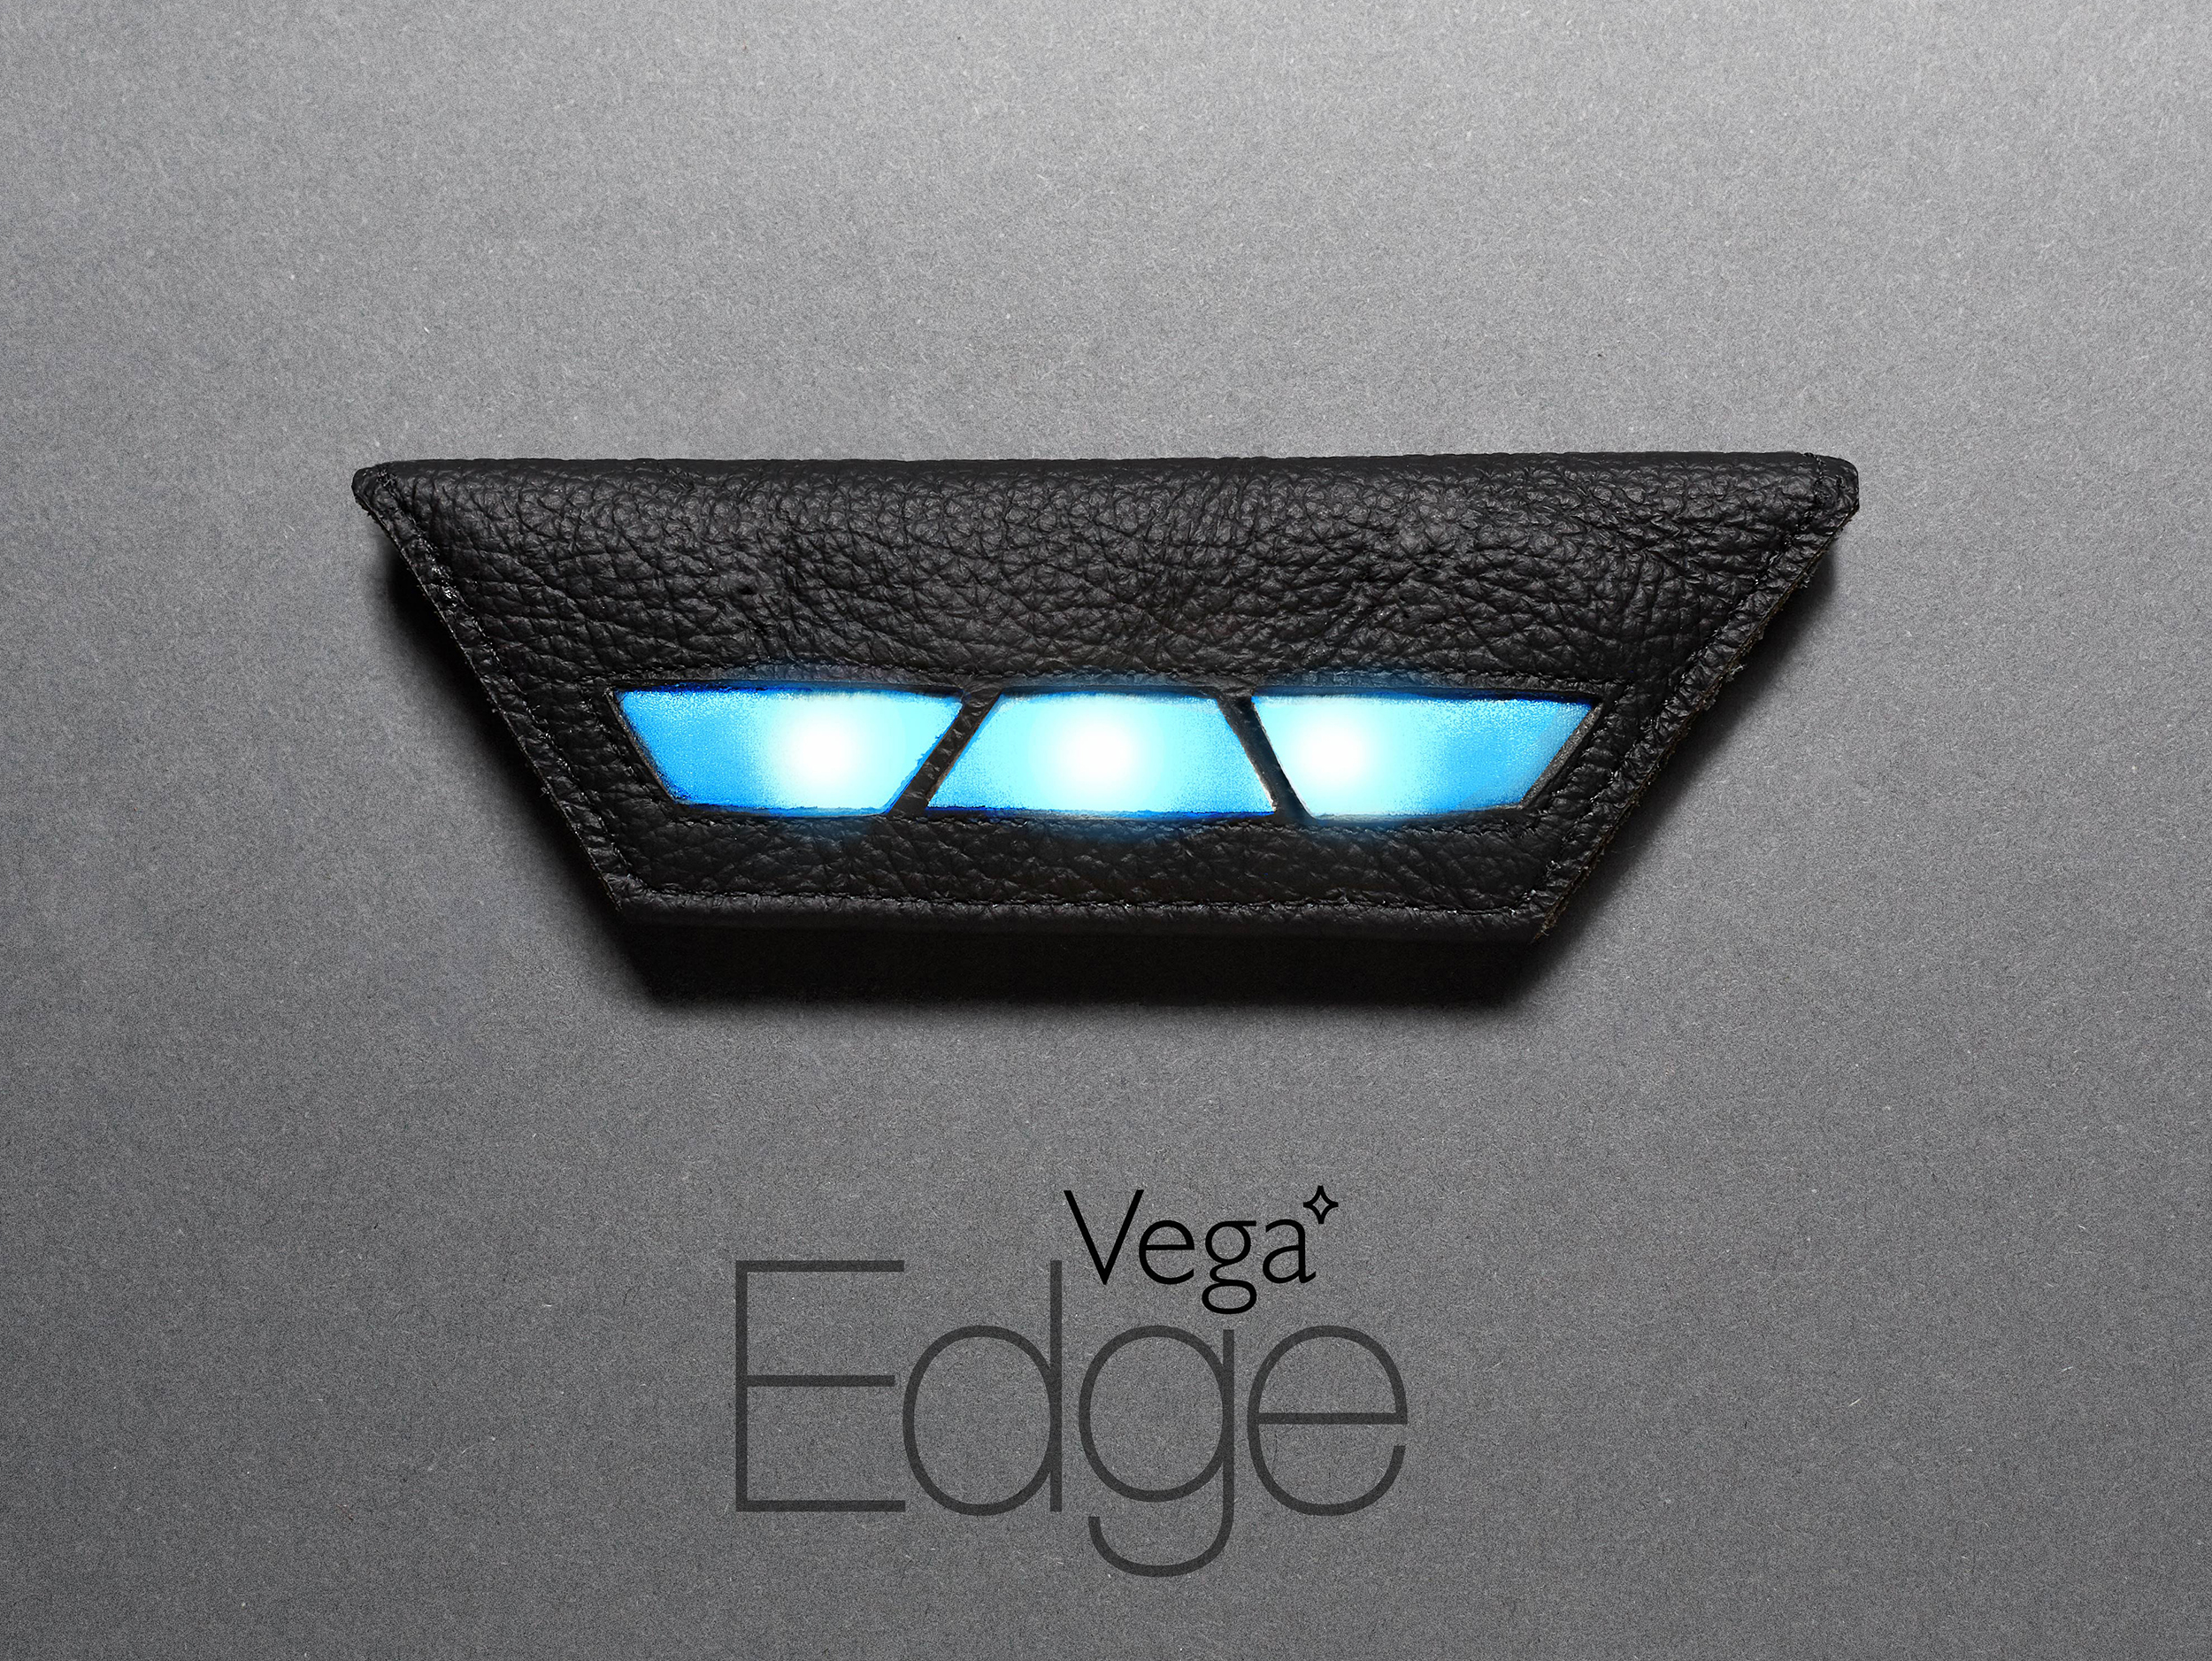 """The Edge is made from leather, with a vegan leather option. The choice of leather as a familiar material made the clip easier to match with other fabrics in one's wardrobe.  The LED circuitboard is removable and comes with 3 light patterns. For those who wished to personalise the light patterning, instructions were provided to """"hack"""" the Edge."""